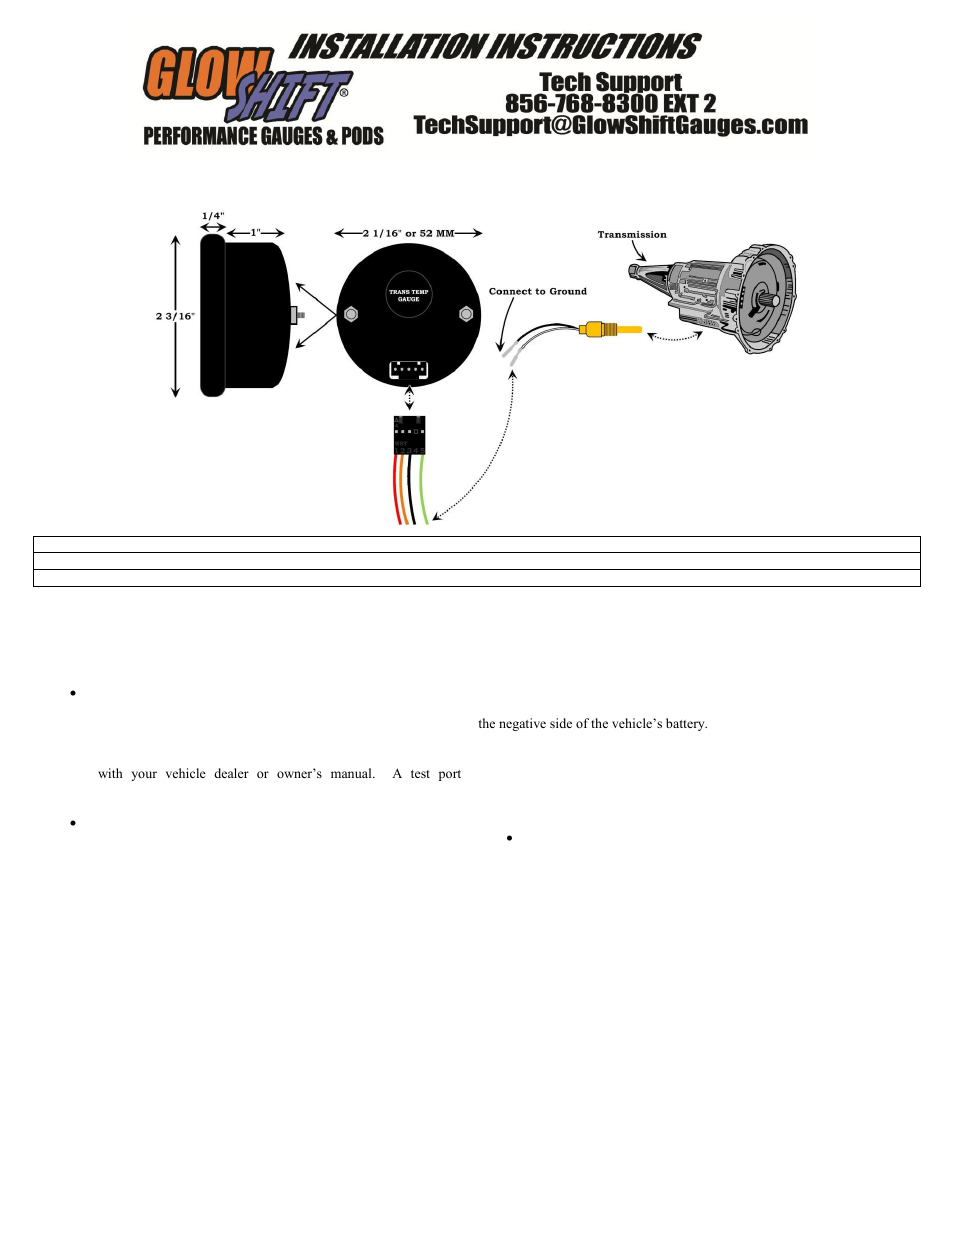 Glowshift Digital Series Celsius Transmission Temperature Gauge User Manual